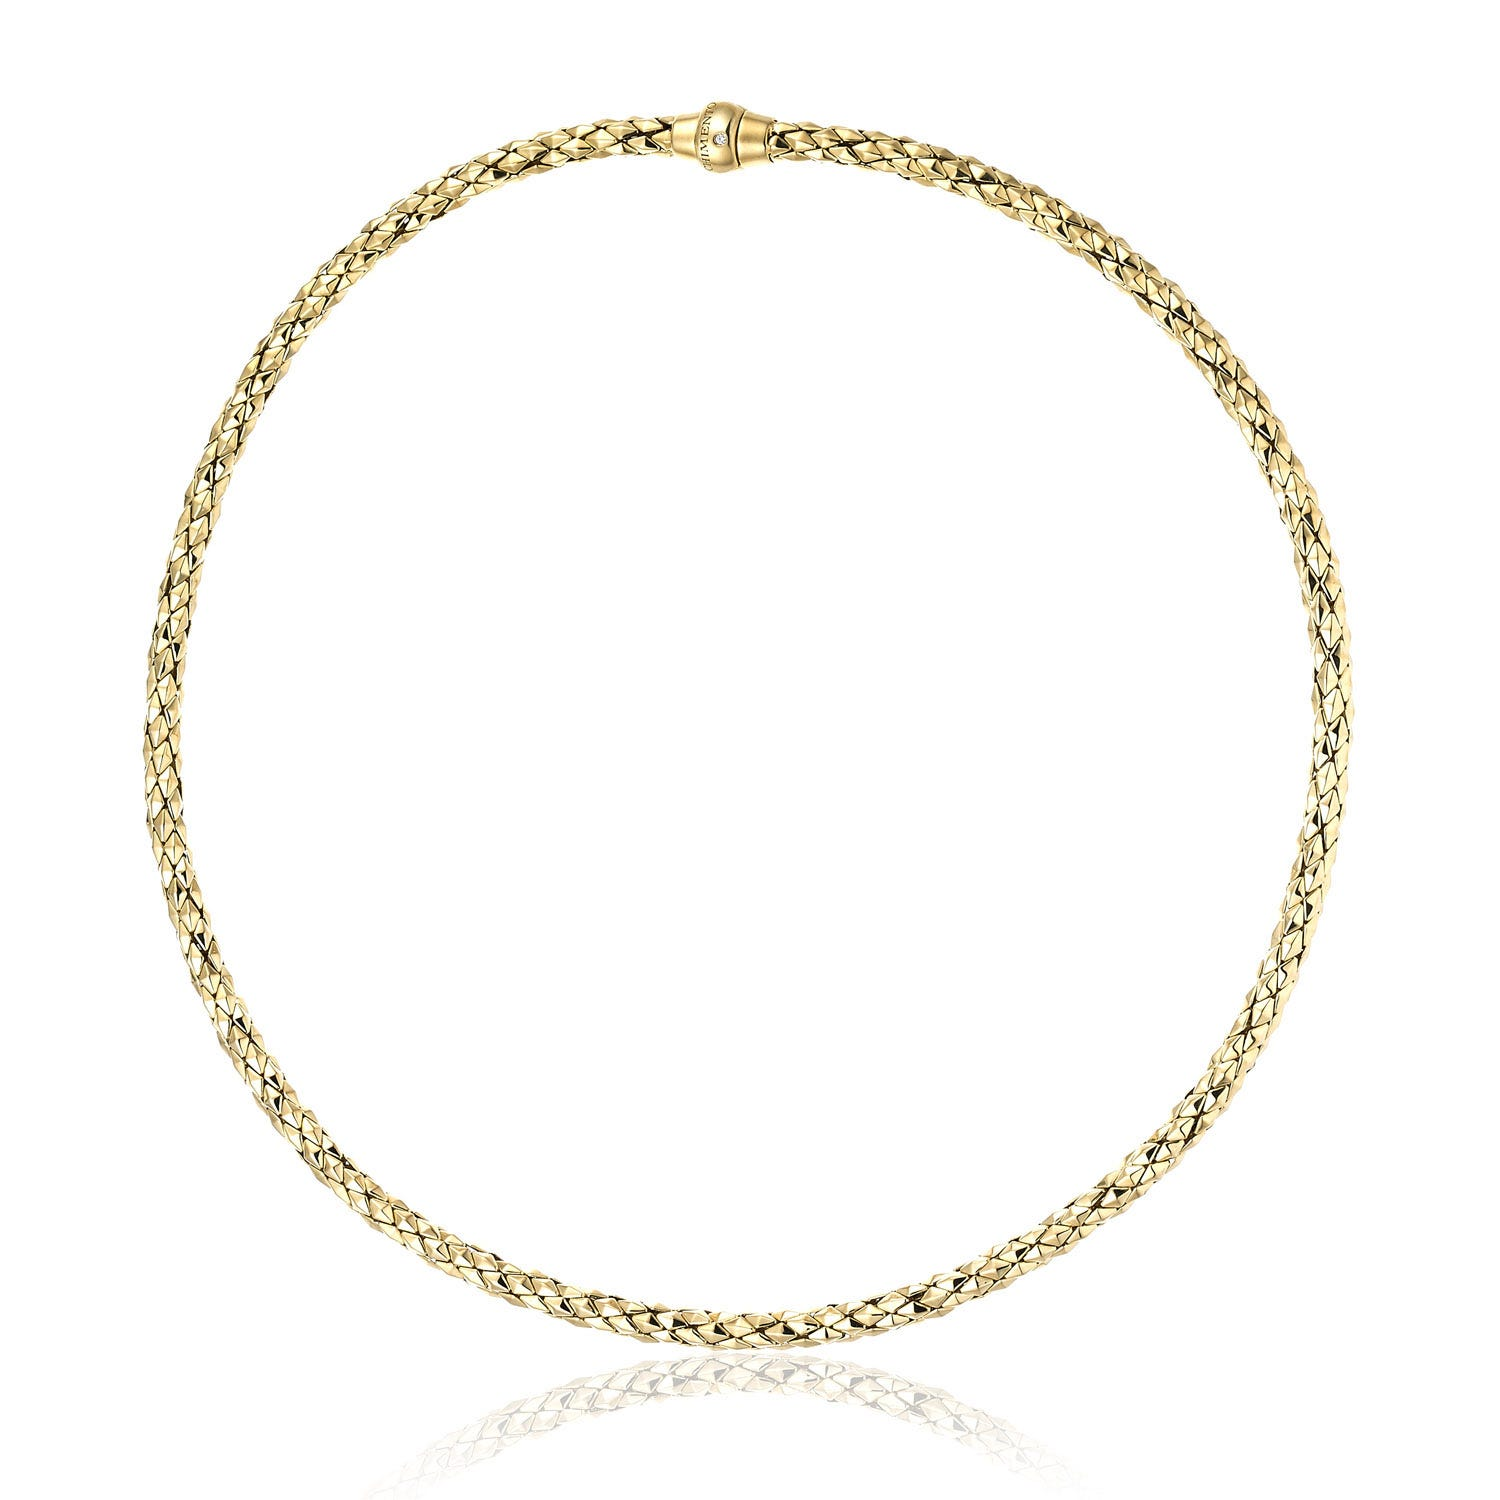 Chimento 18ct Yellow Gold and Diamond Stretch Classic Necklace